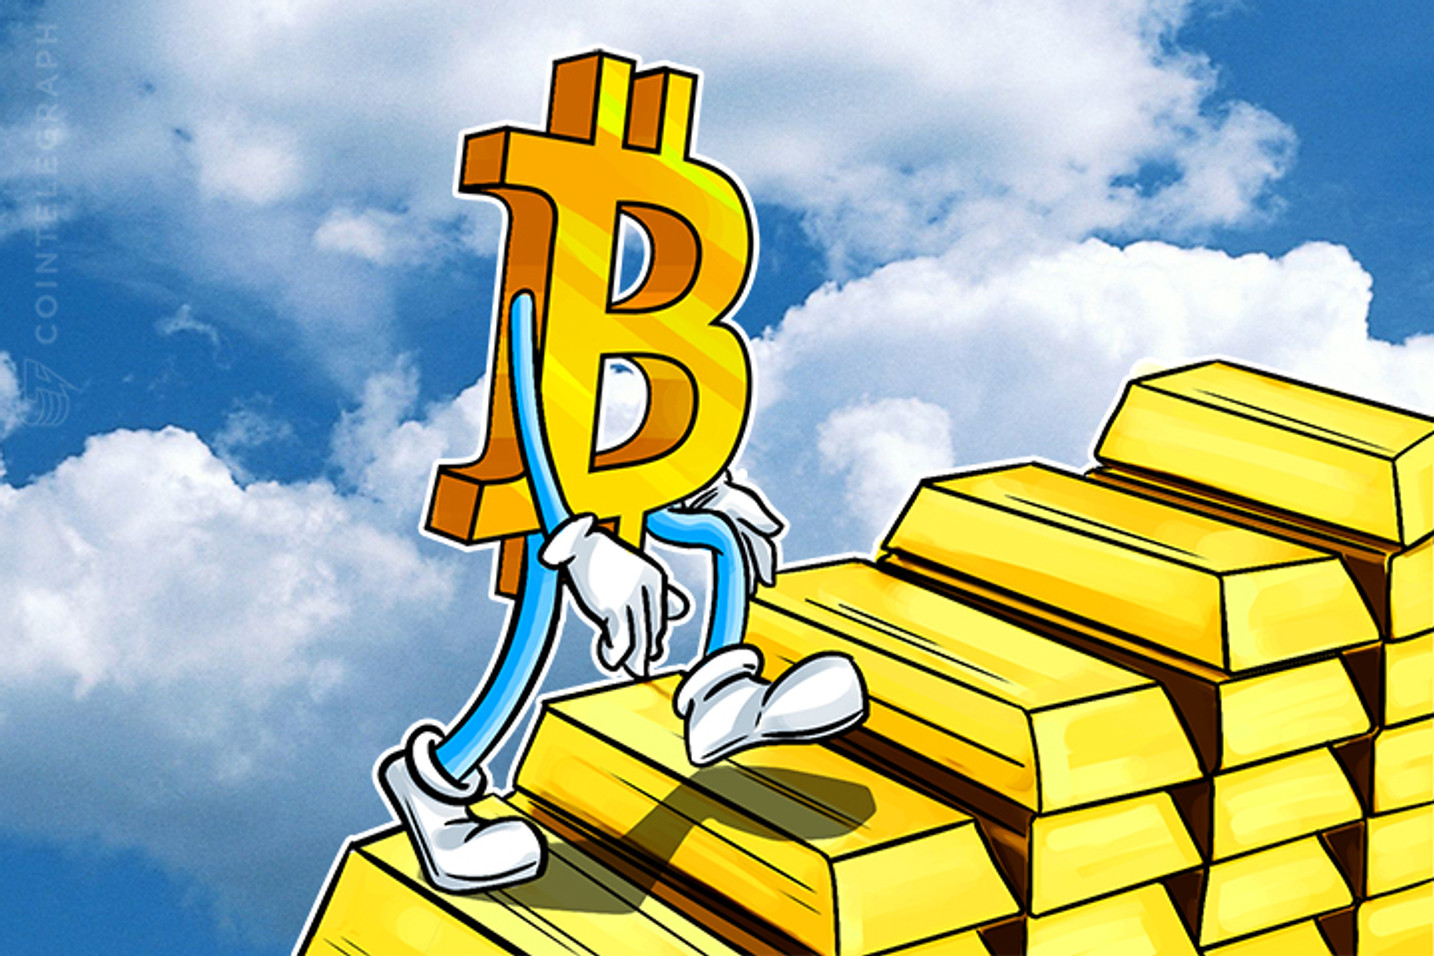 Bitcoin Price Will Likely Increase to $5,000 Post SegWit: Reasons & Trends